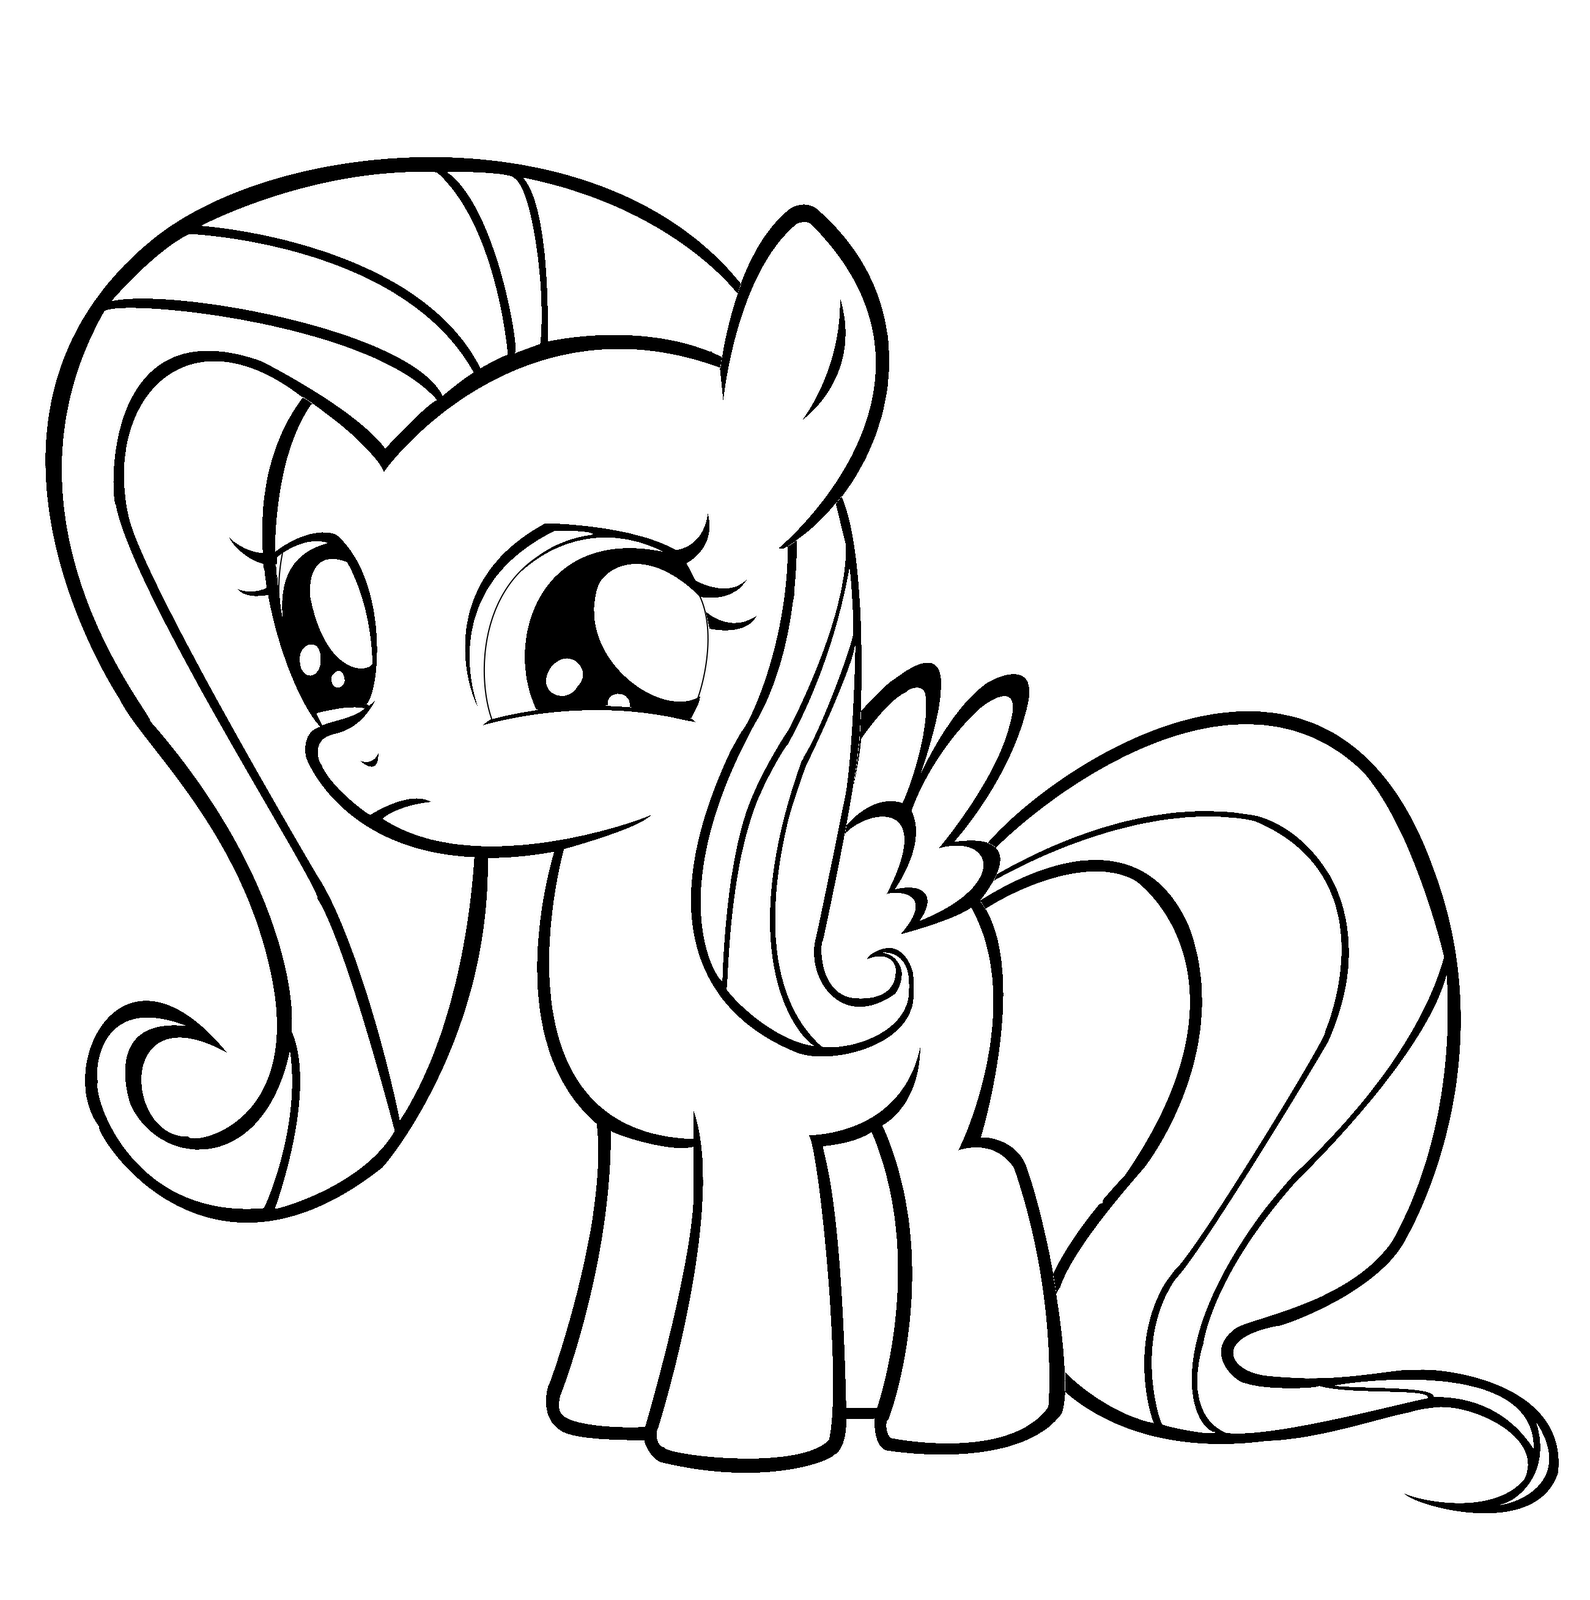 my little pony pictures mlp picture contest round 5 sonic rainboom my little pony my pictures little